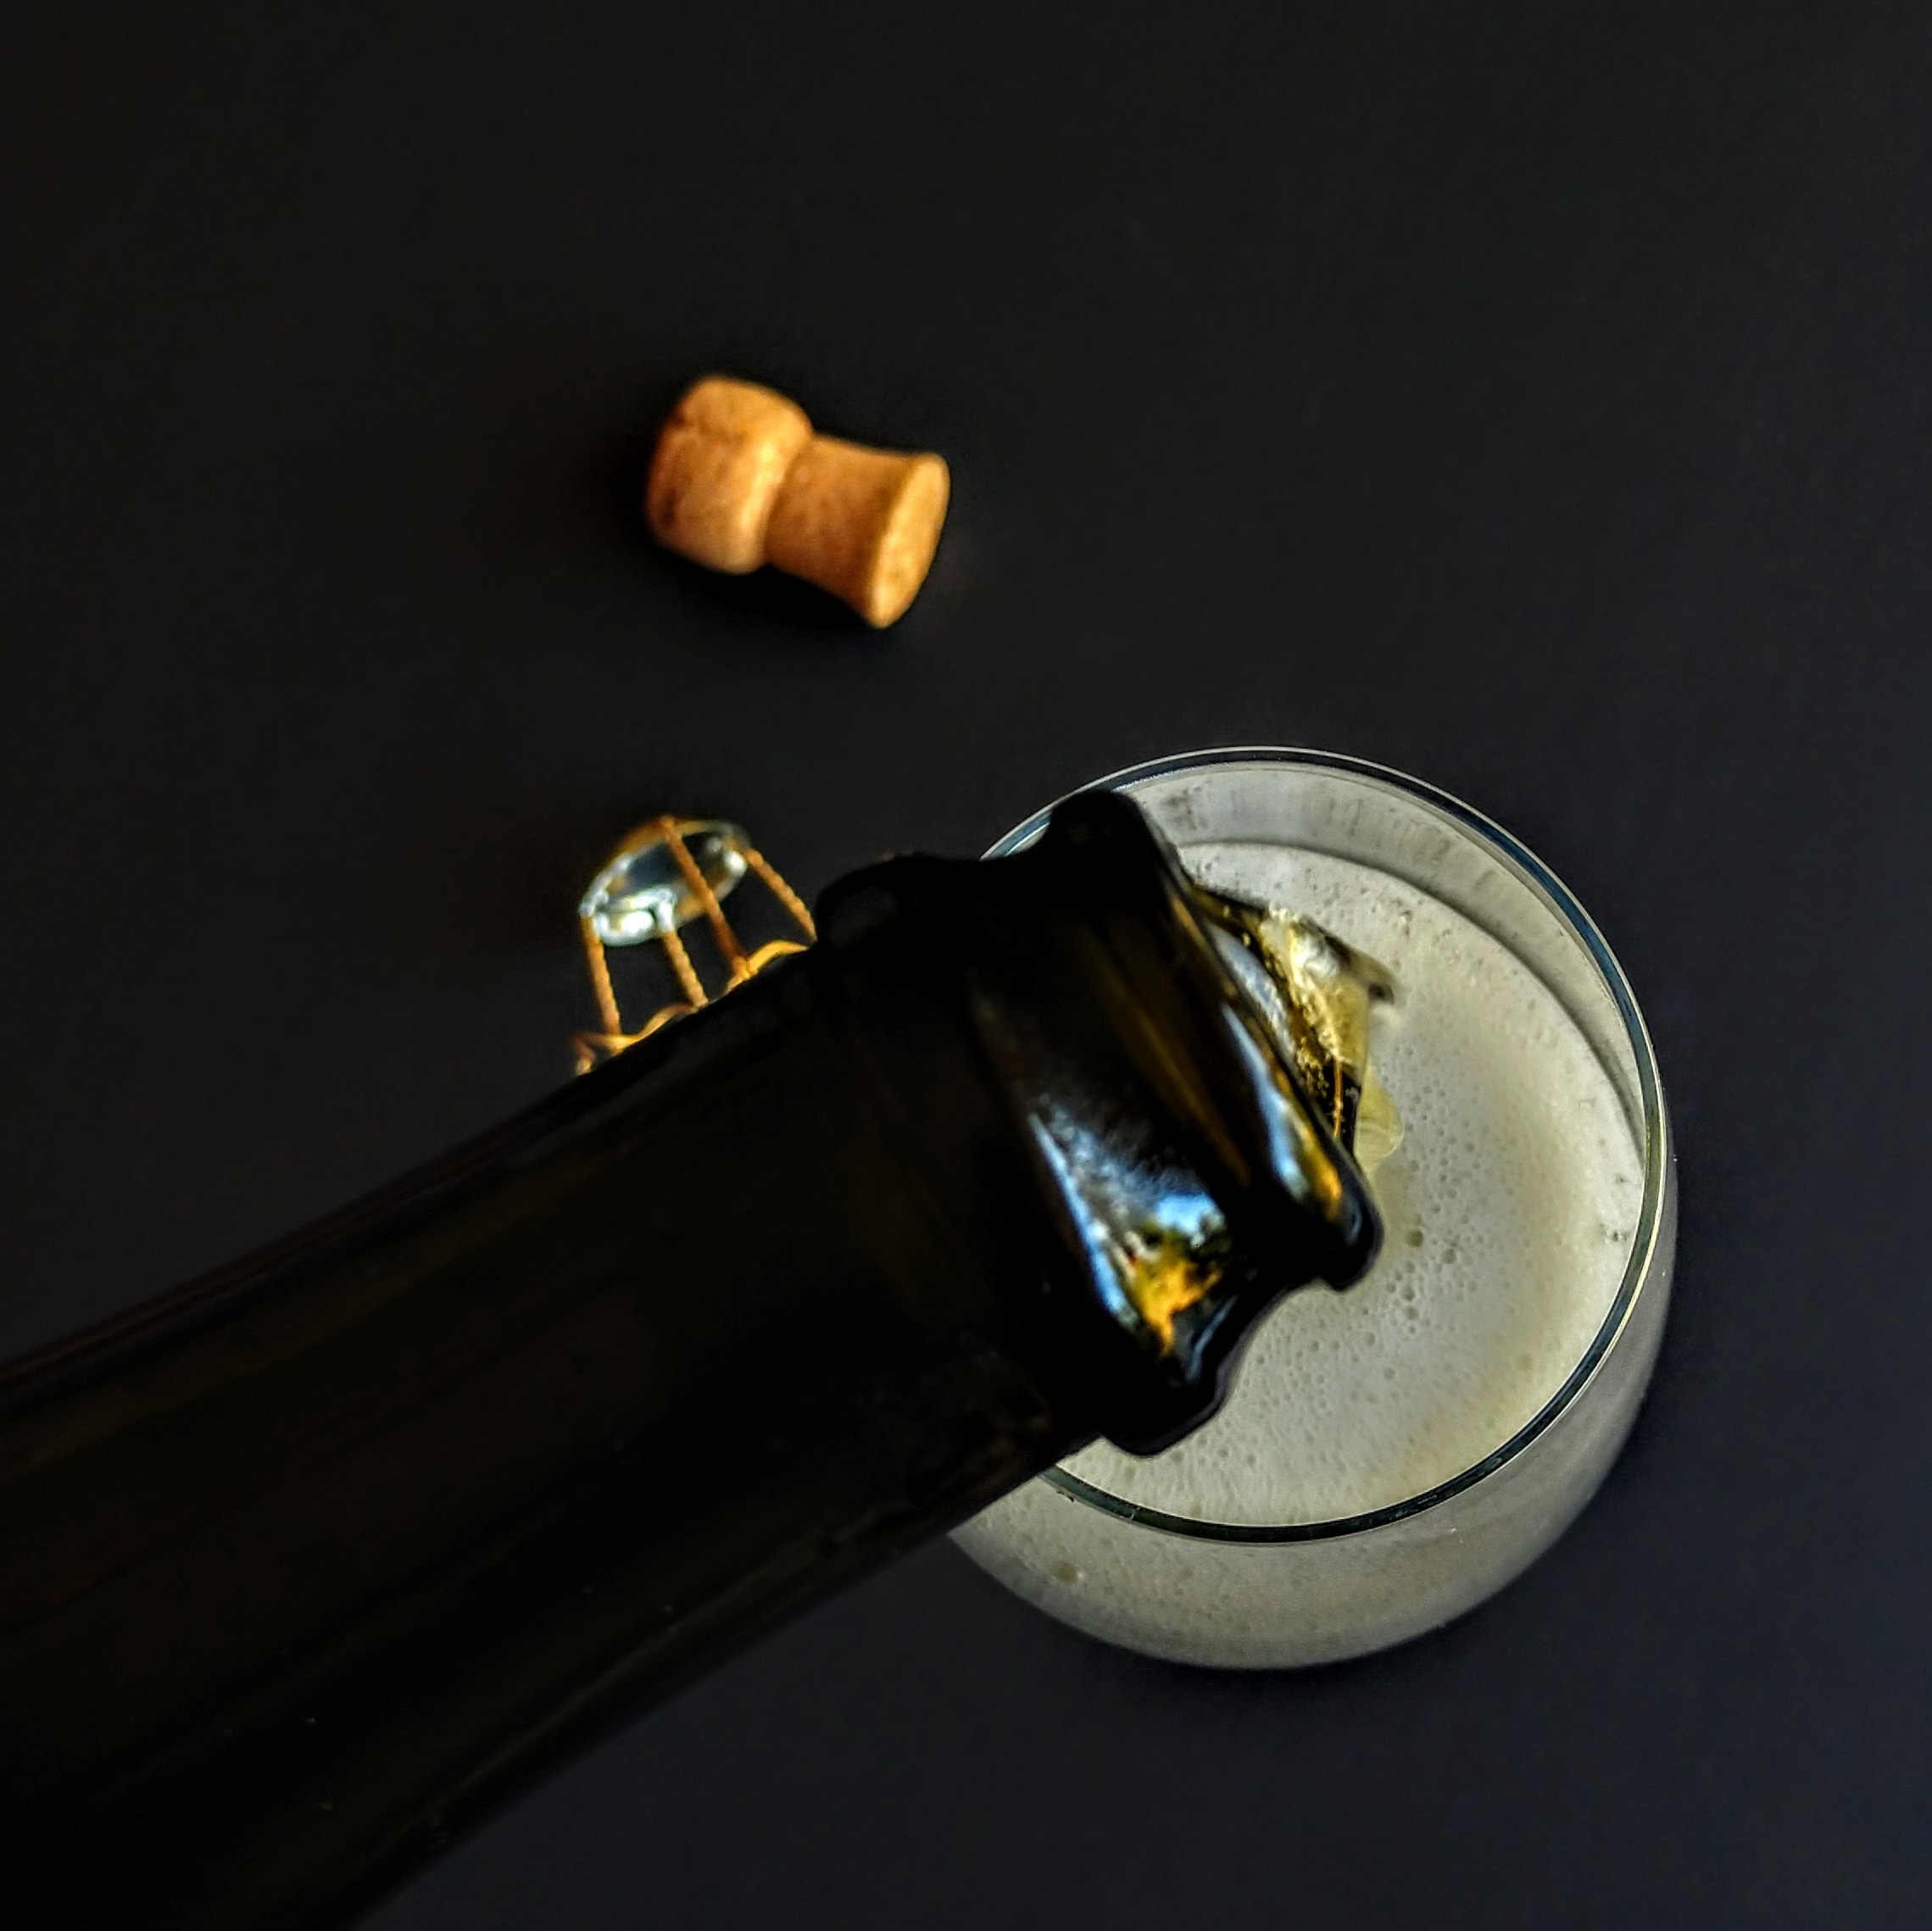 Pouring sparkling pic.jpg